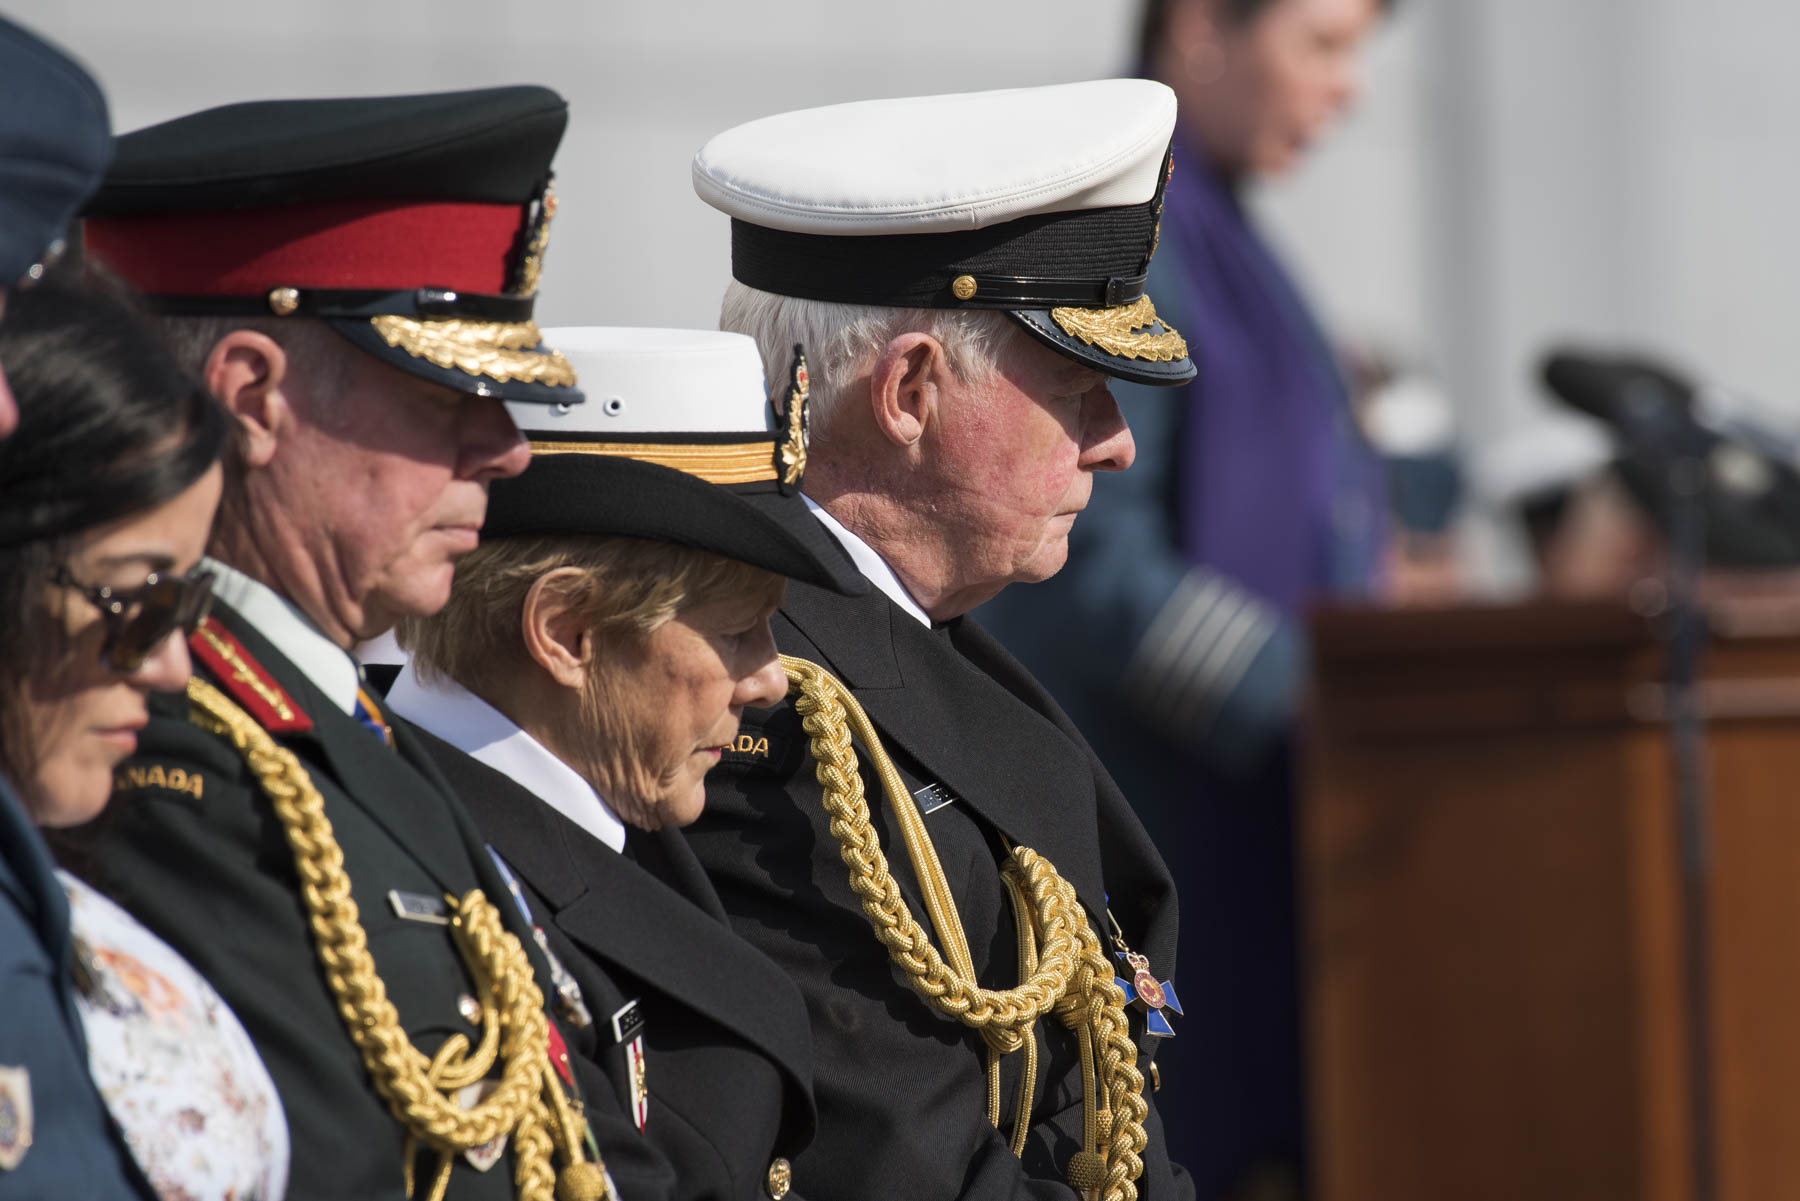 His Excellency served as the Canadian Armed Forces' Commander-in-Chief for seven years. During his appointment, the Governor General made it a priority to support military members and their families through various initiatives and activities.